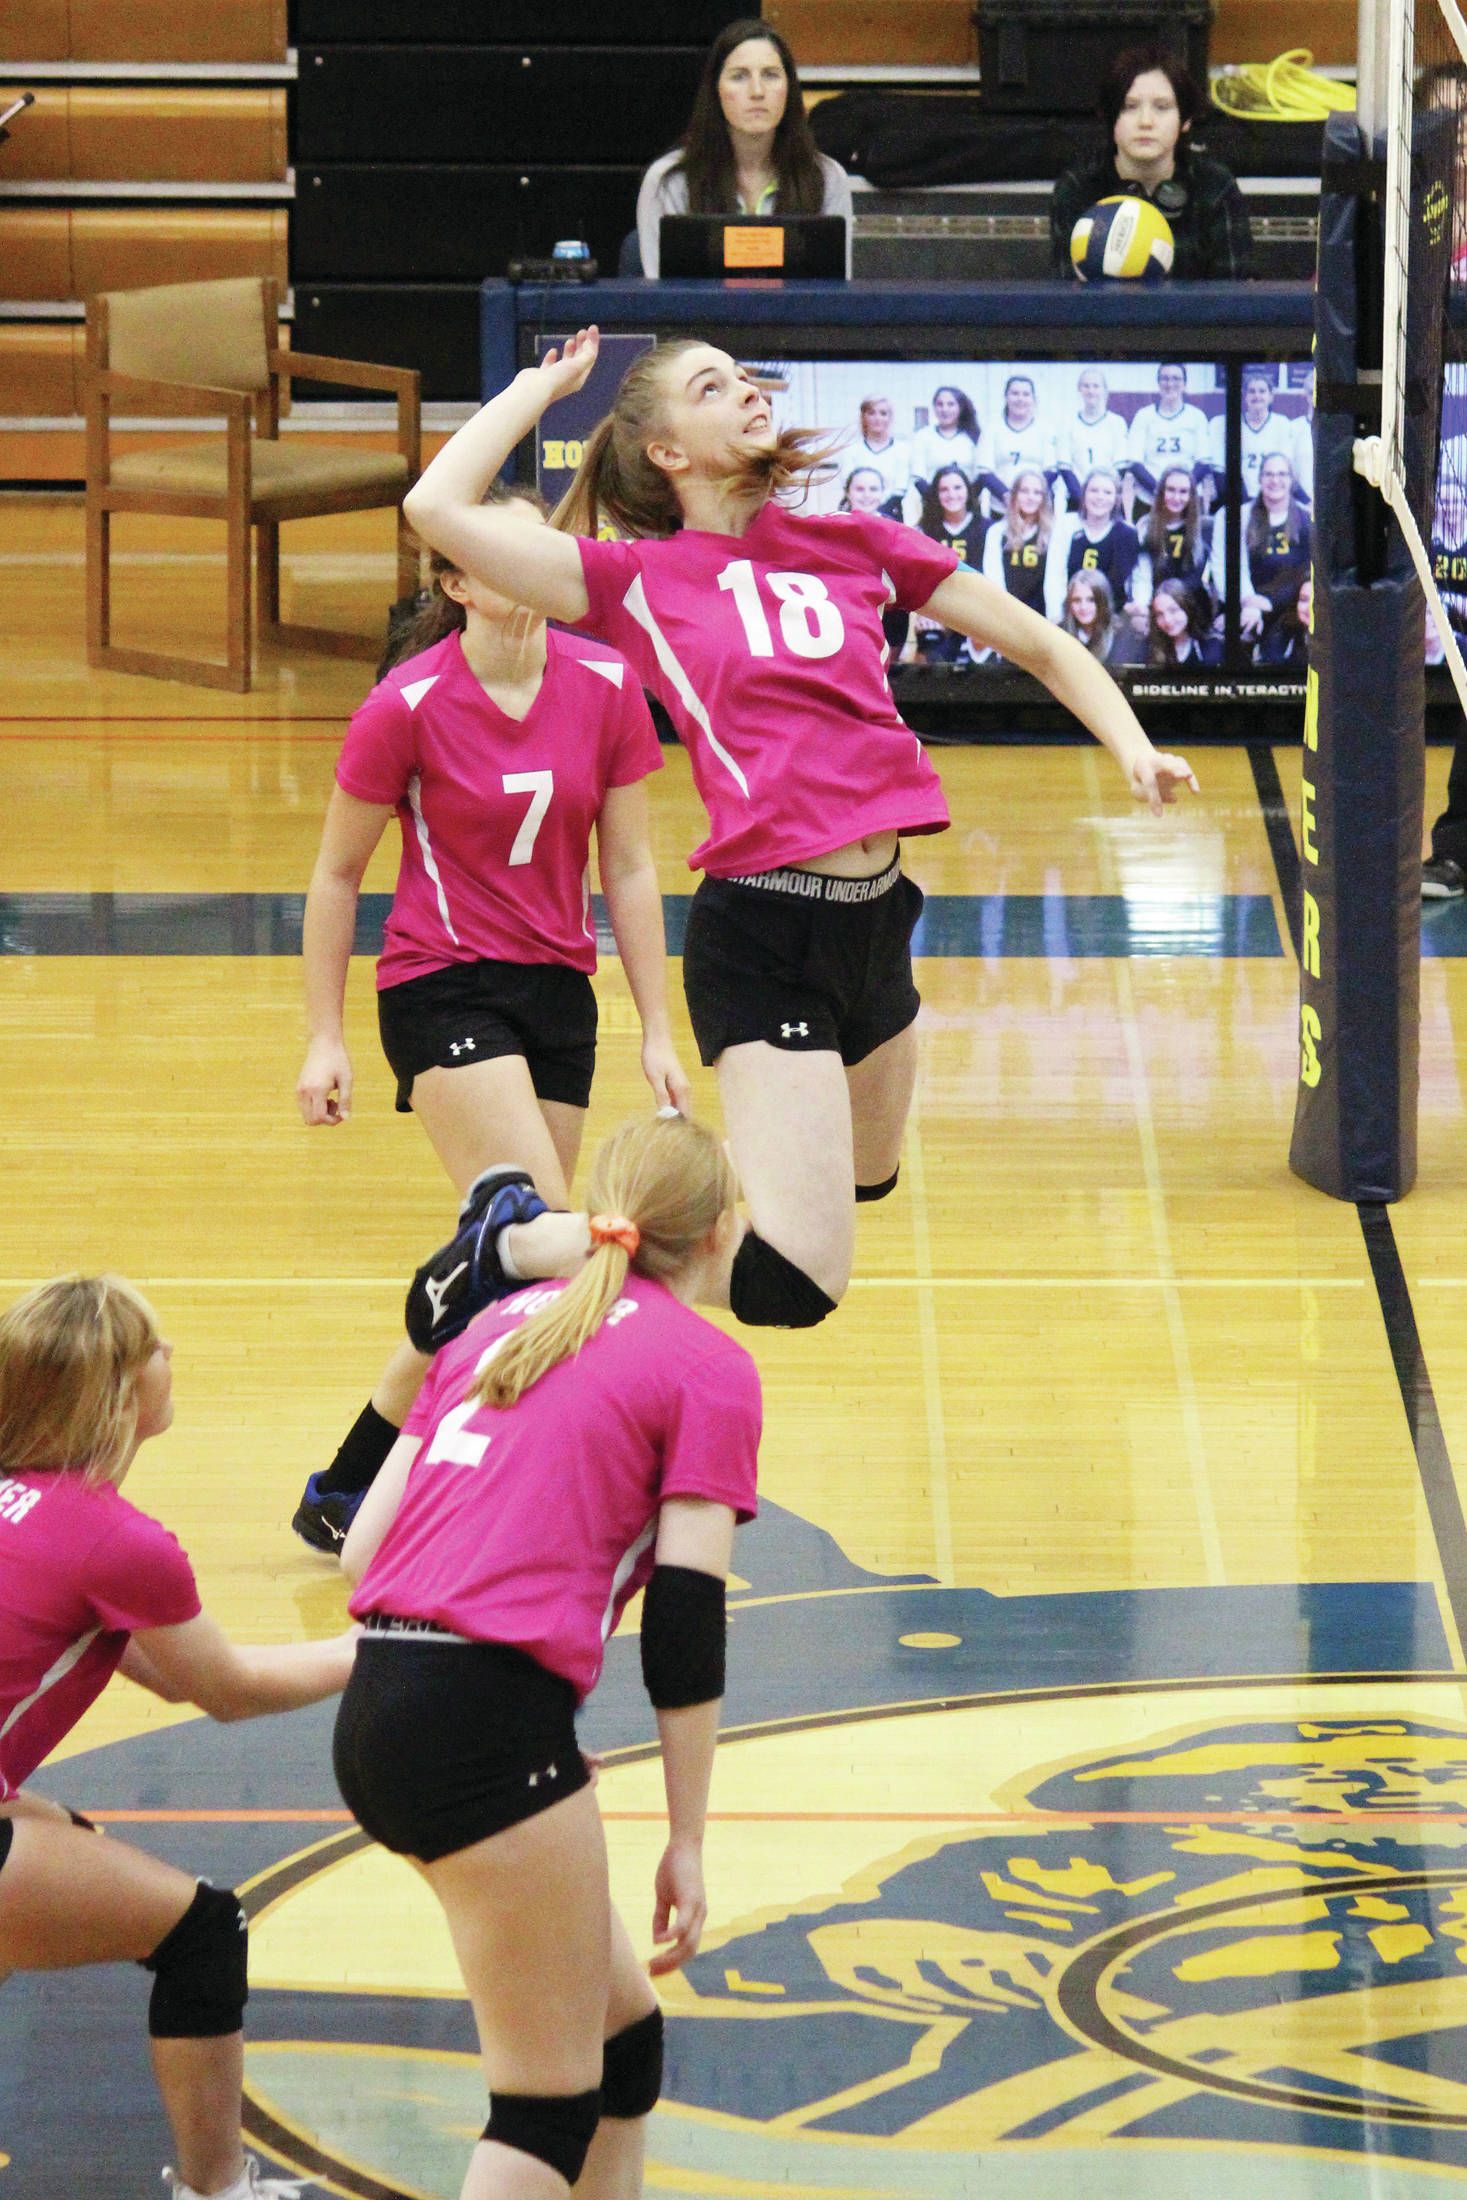 Homer's Karmyn Gallios jumps to spike the ball during a Friday, Oct. 18, 2019 volleyball game against Seward High School in the Alice Witte Gymnasium in Homer, Alaska. (Photo by Megan Pacer/Homer News)